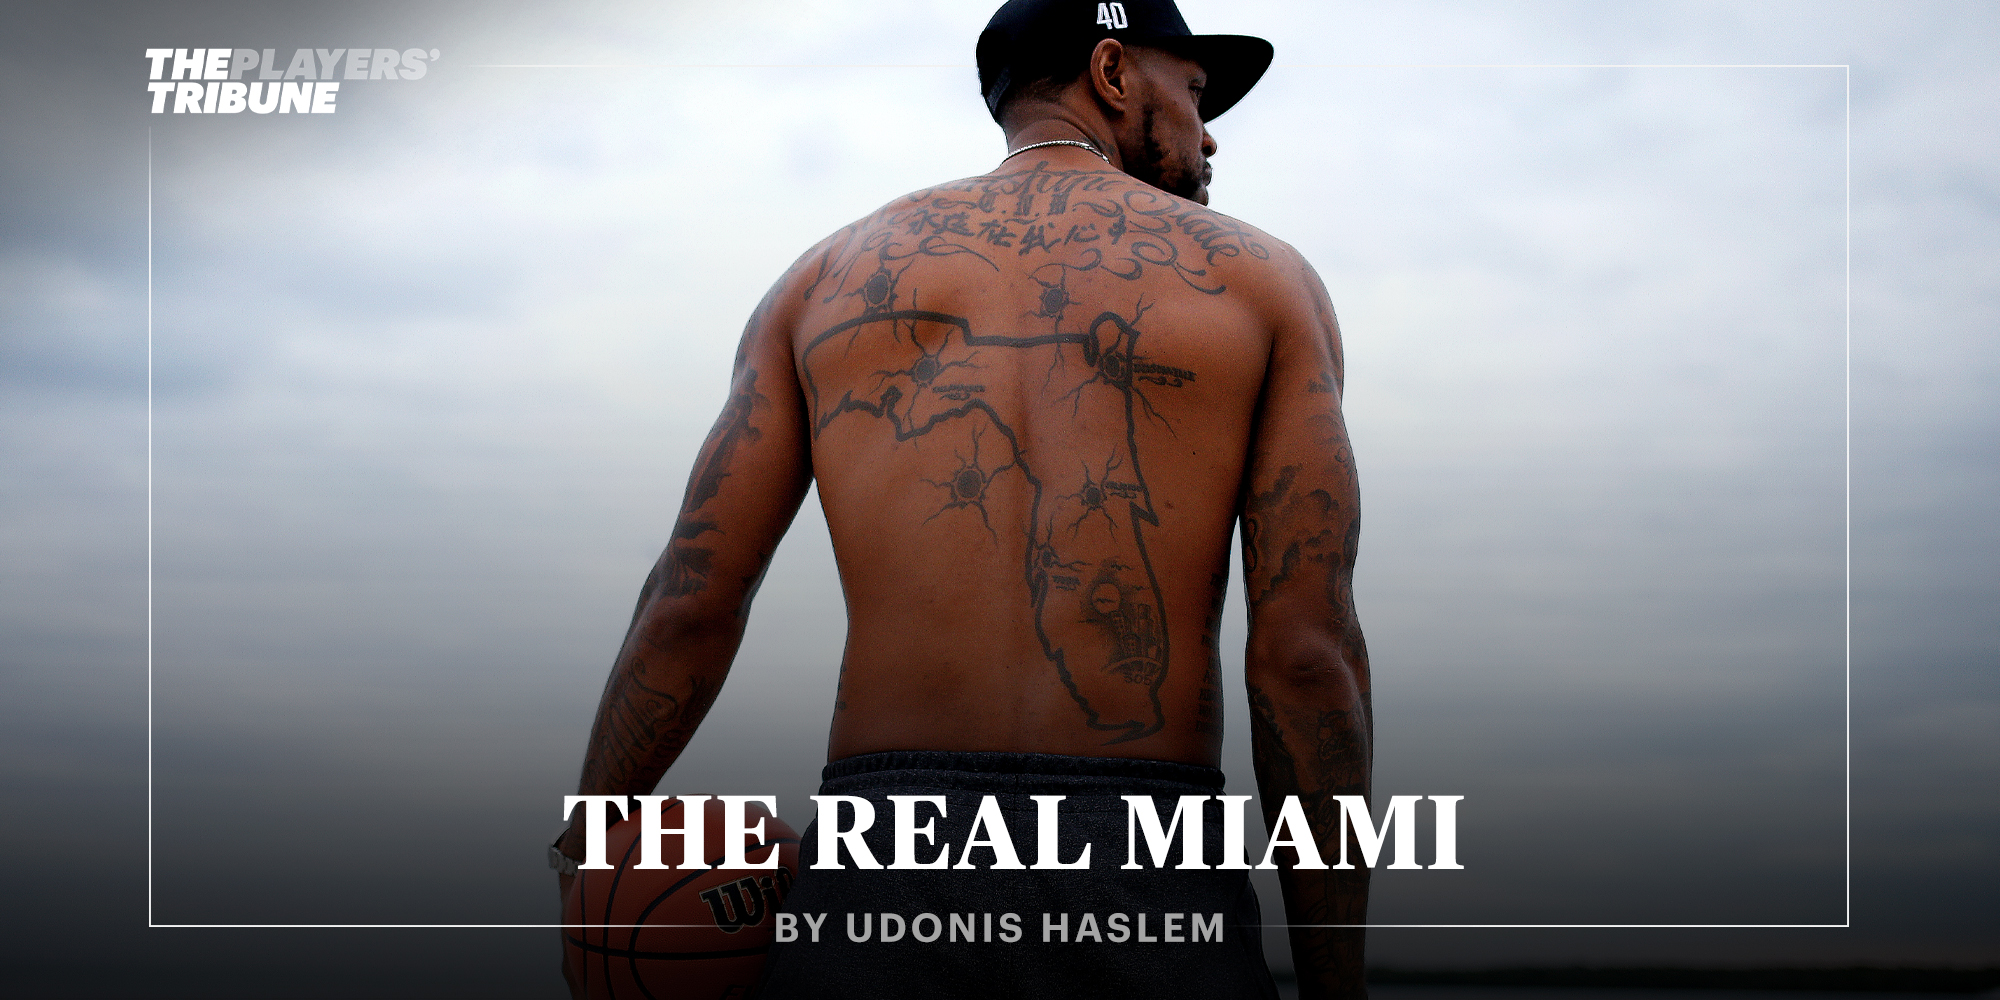 The Real Miami | Udonis Haslem